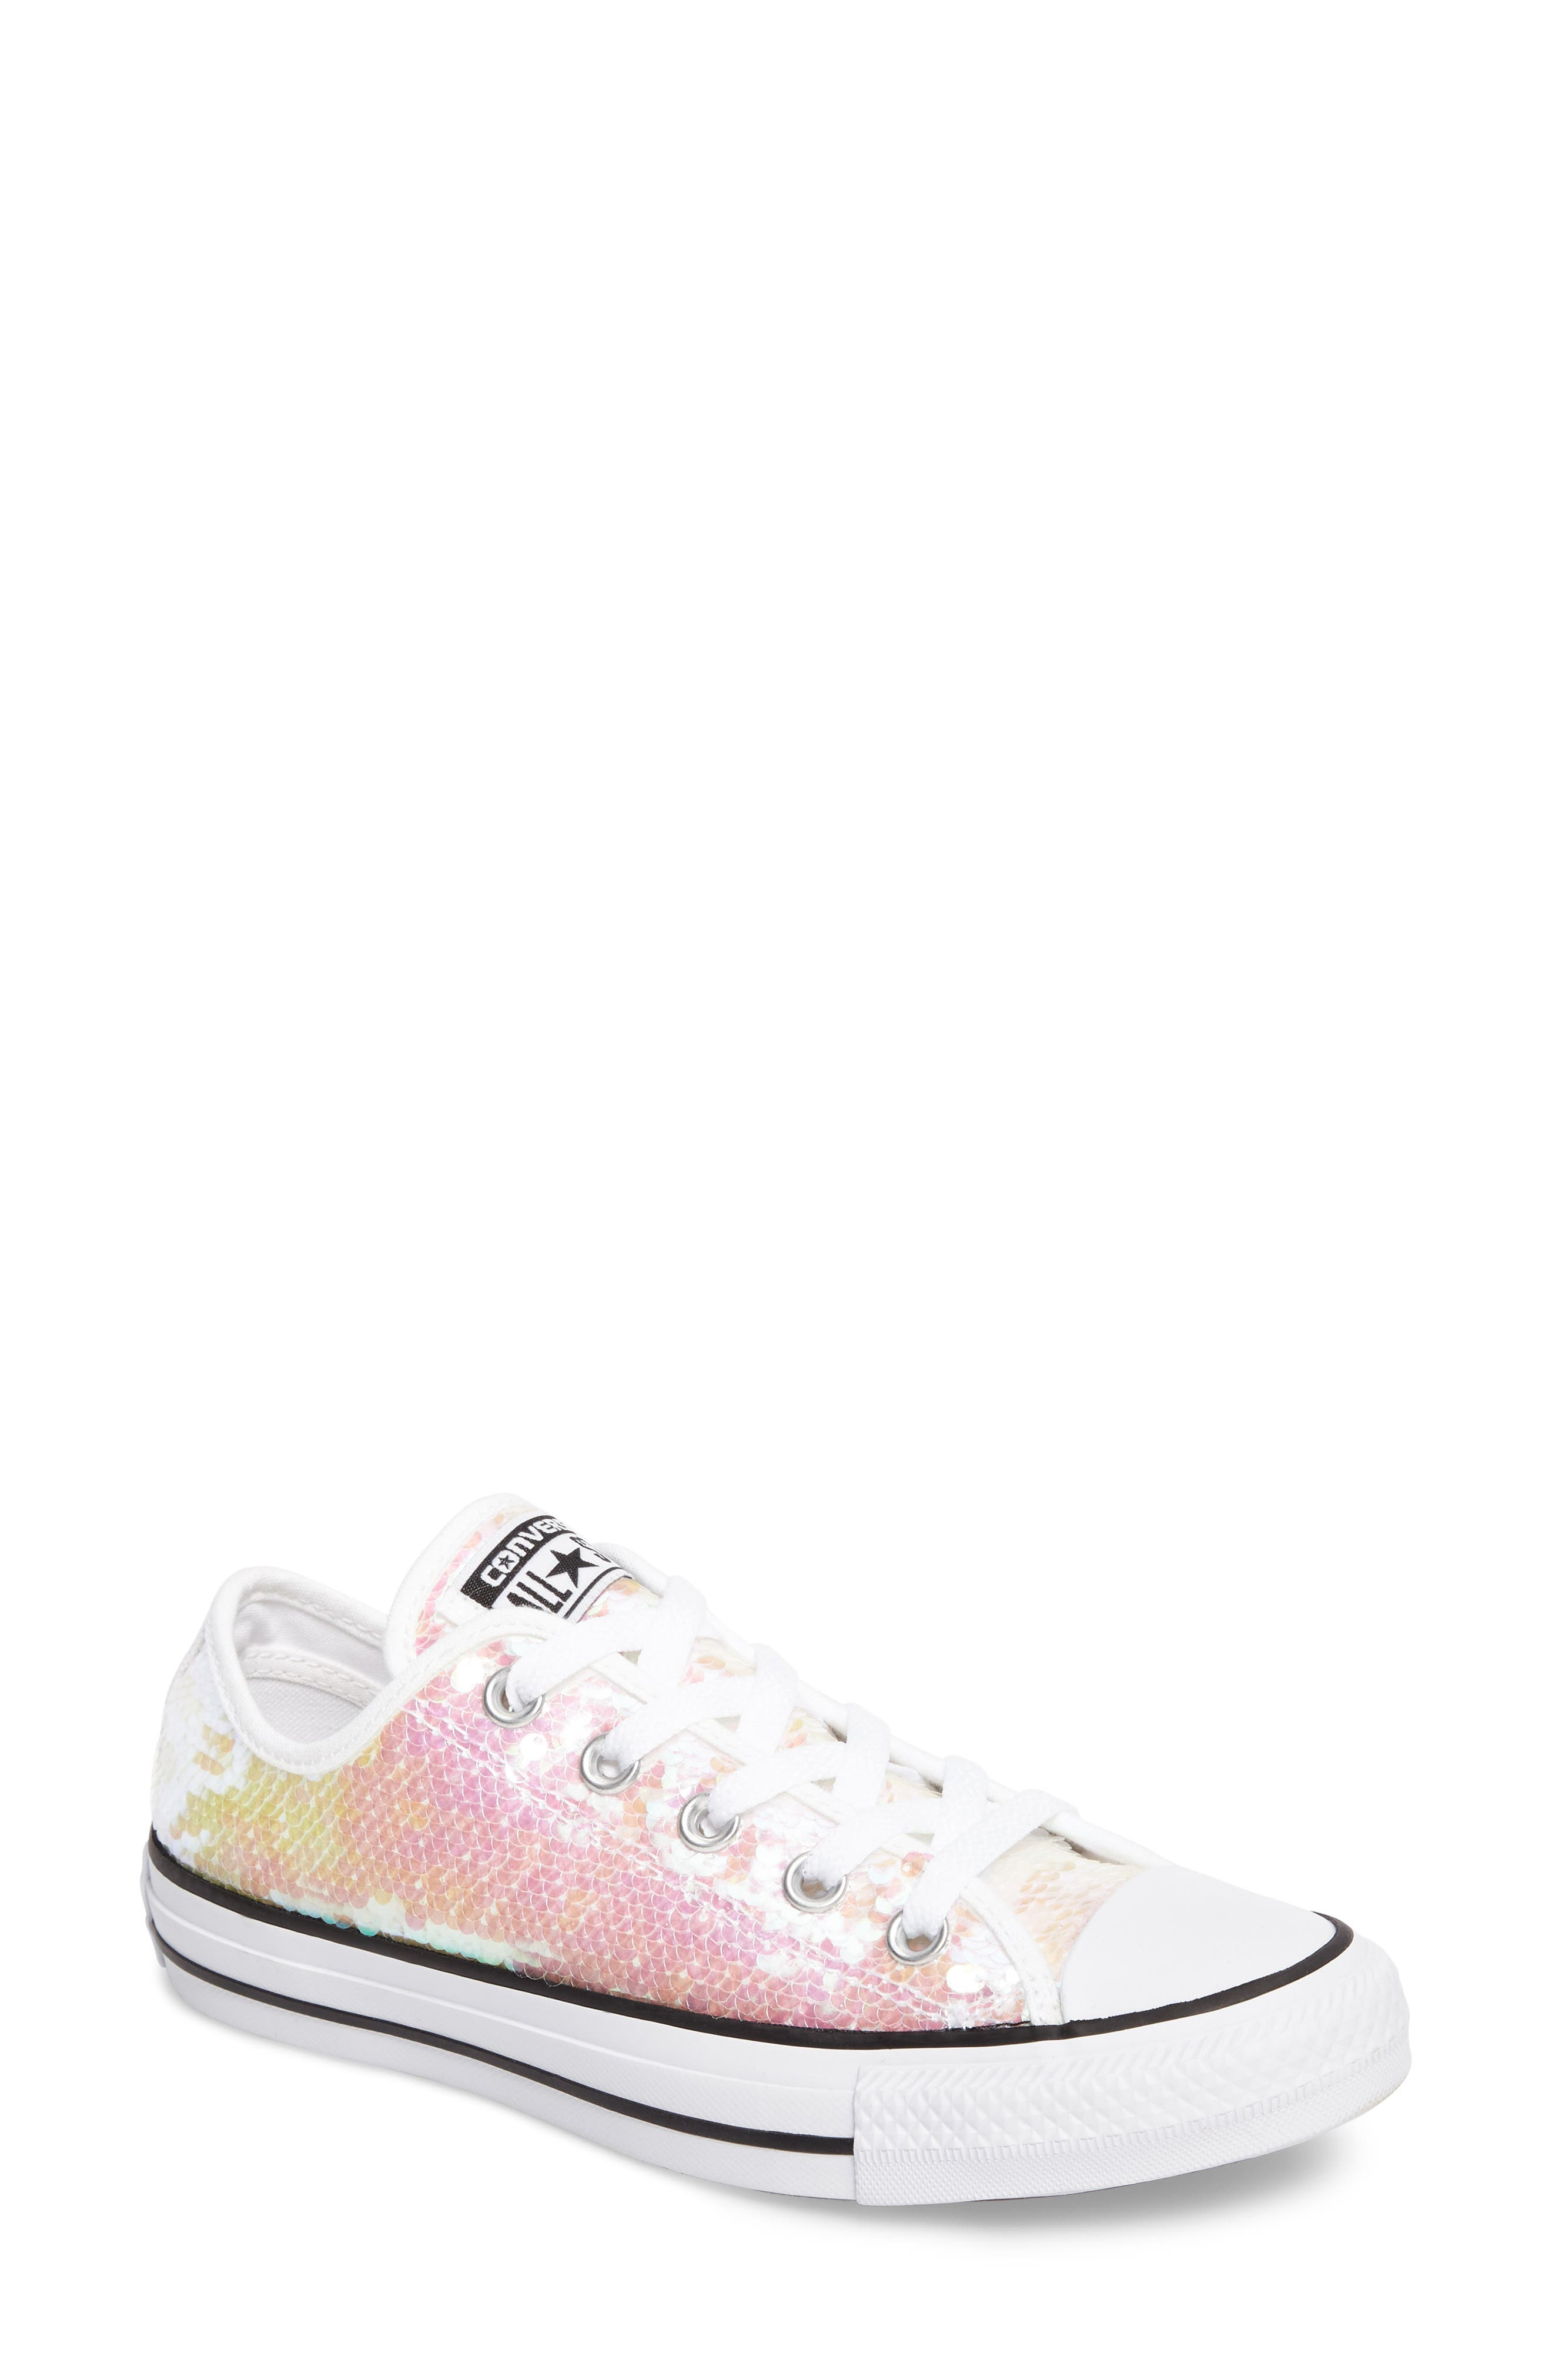 Chuck Taylor<sup>®</sup> All Star<sup>®</sup> Sequin Low Top Sneaker,                             Main thumbnail 2, color,